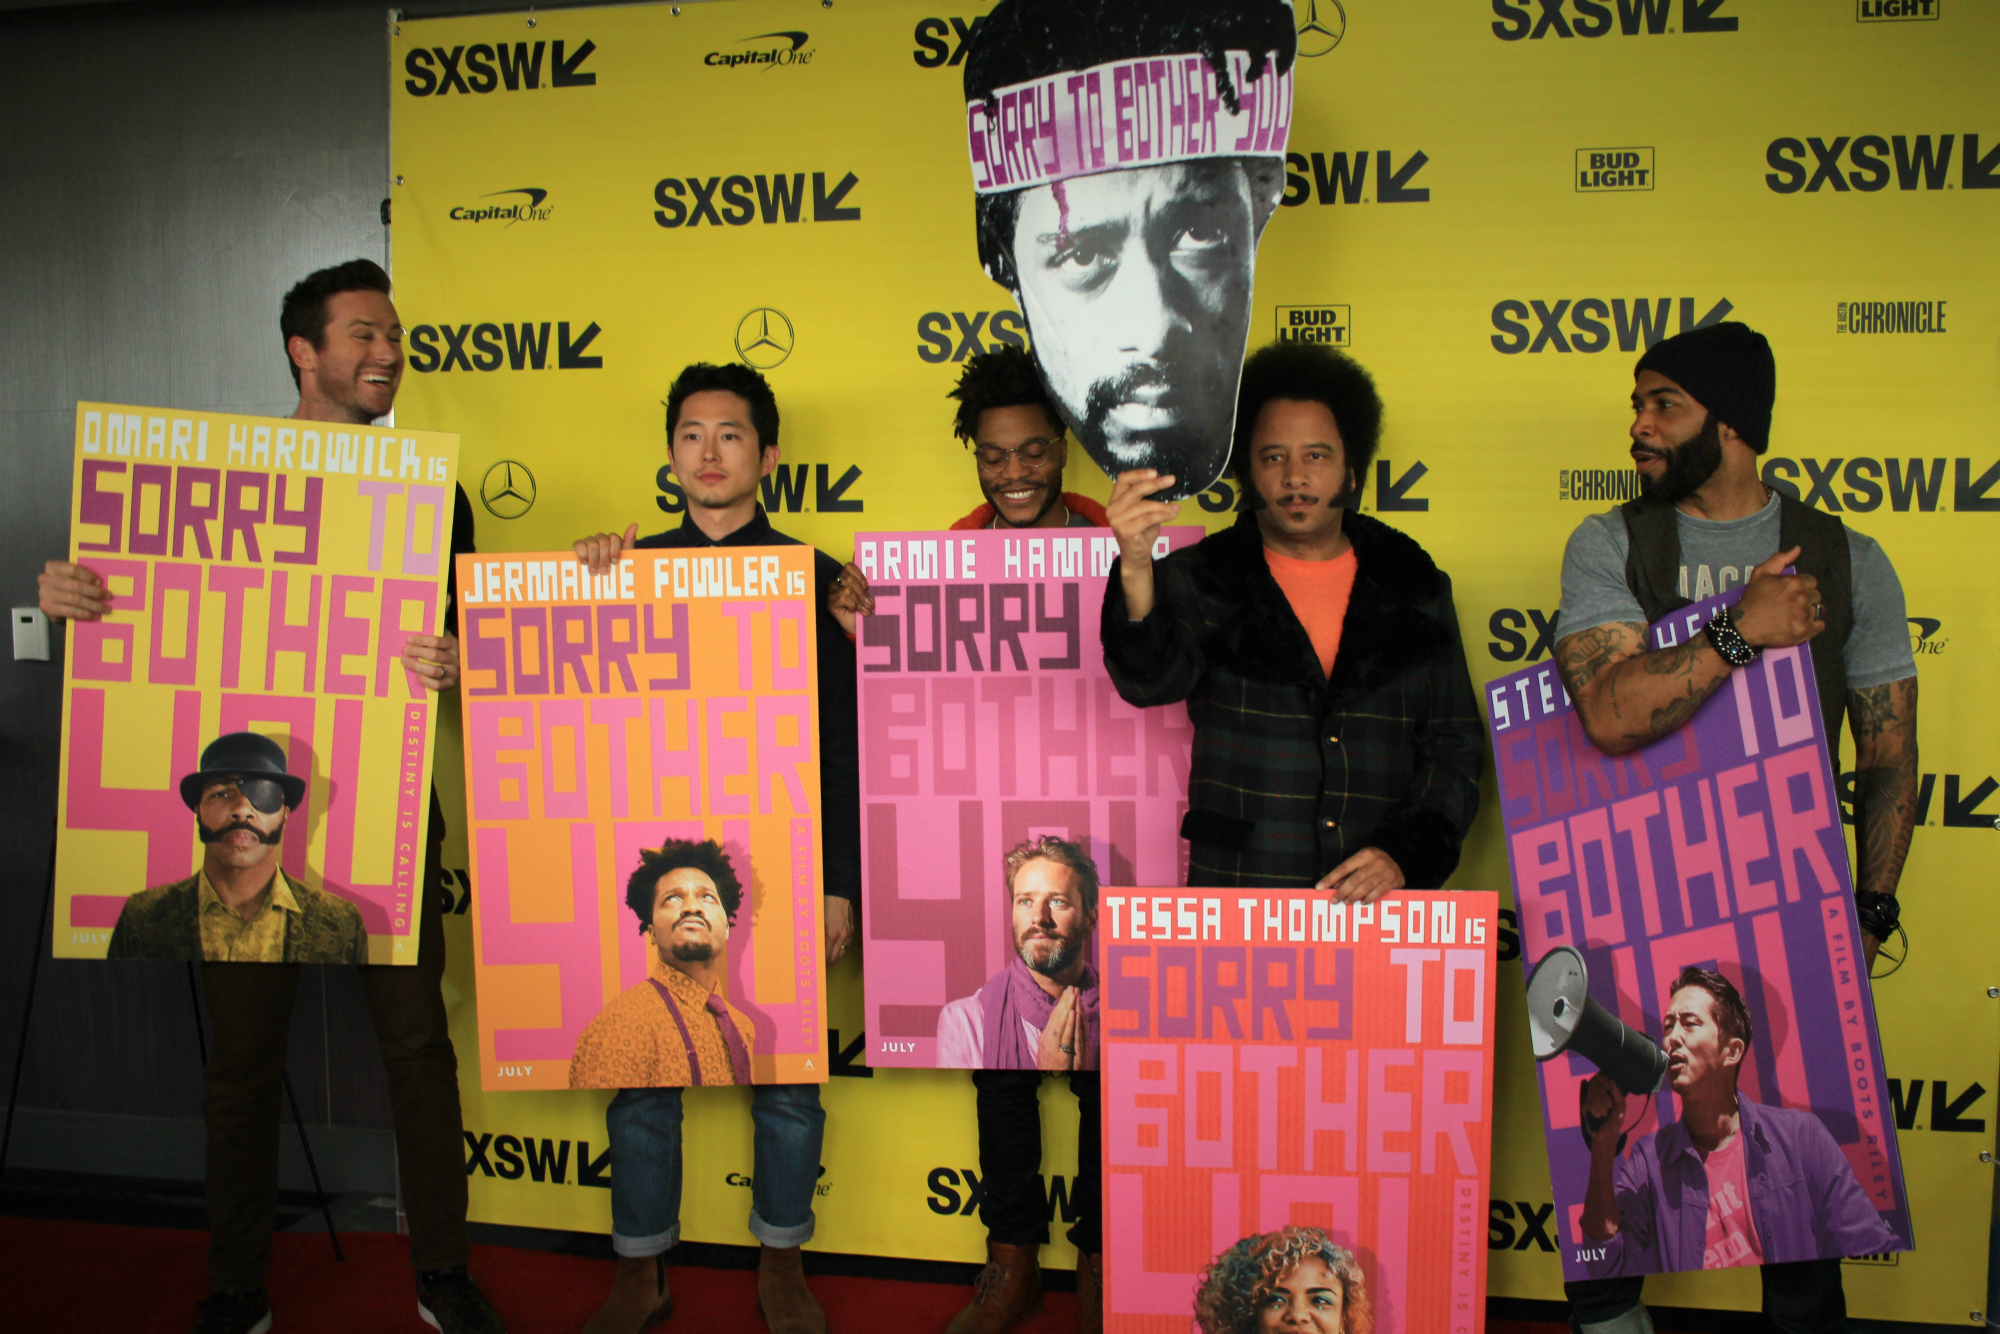 Cast and Crew of Sorry to Bother You, photo by Heather Kaplan